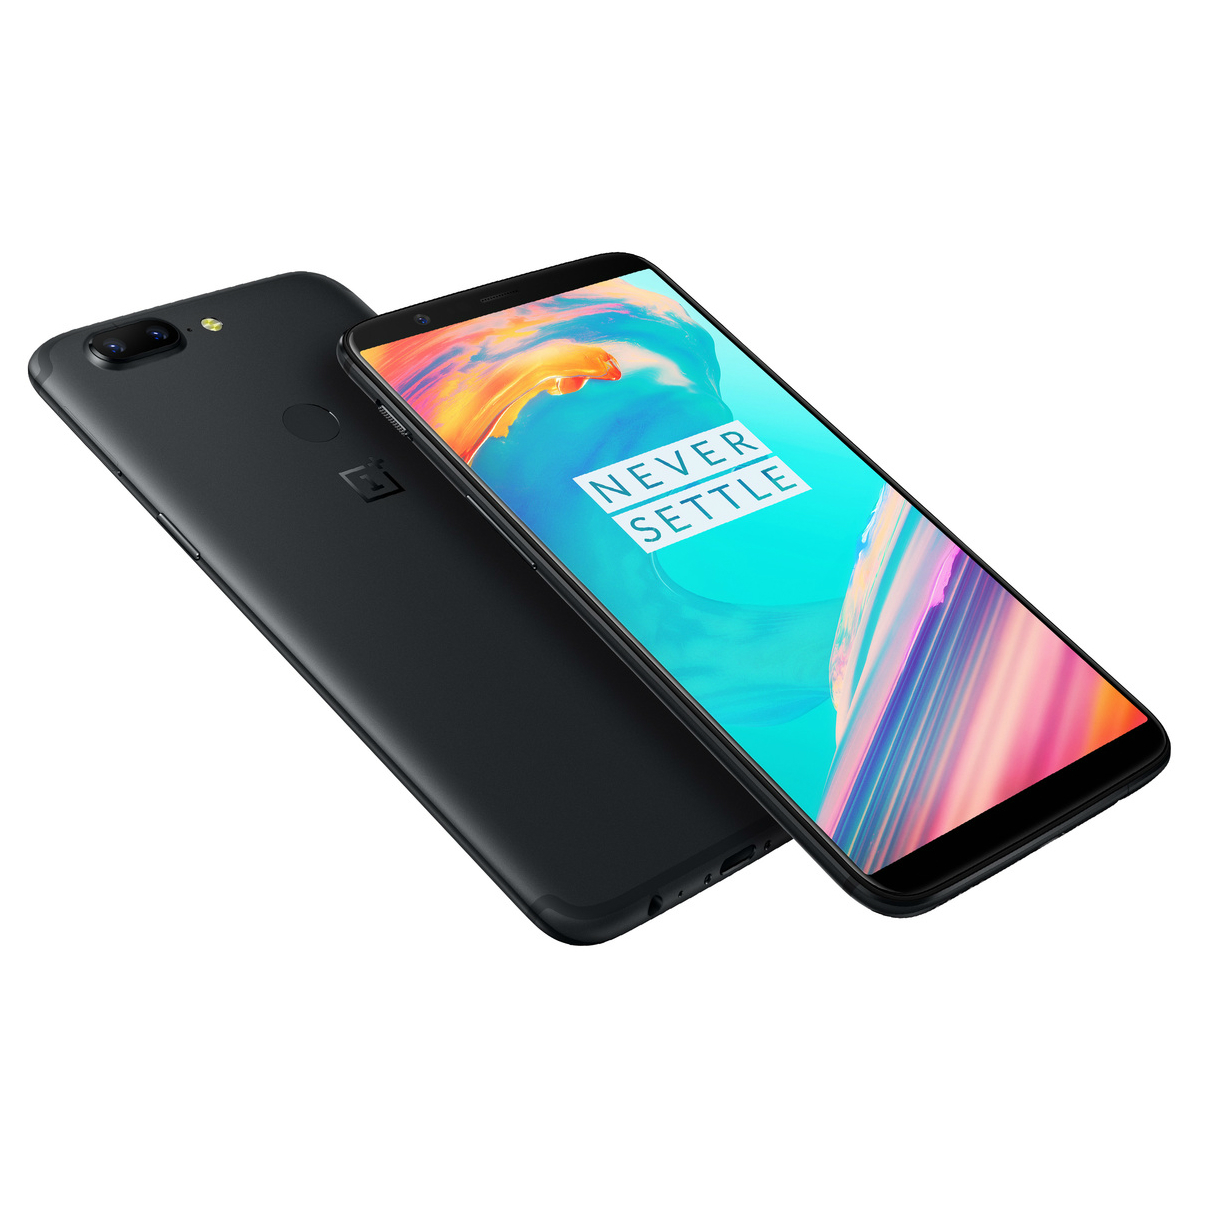 Image of OnePlus 5T Dual Sim 6GB/64GB SIM FREE/ UNLOCKED - Midnight Black (International Version)